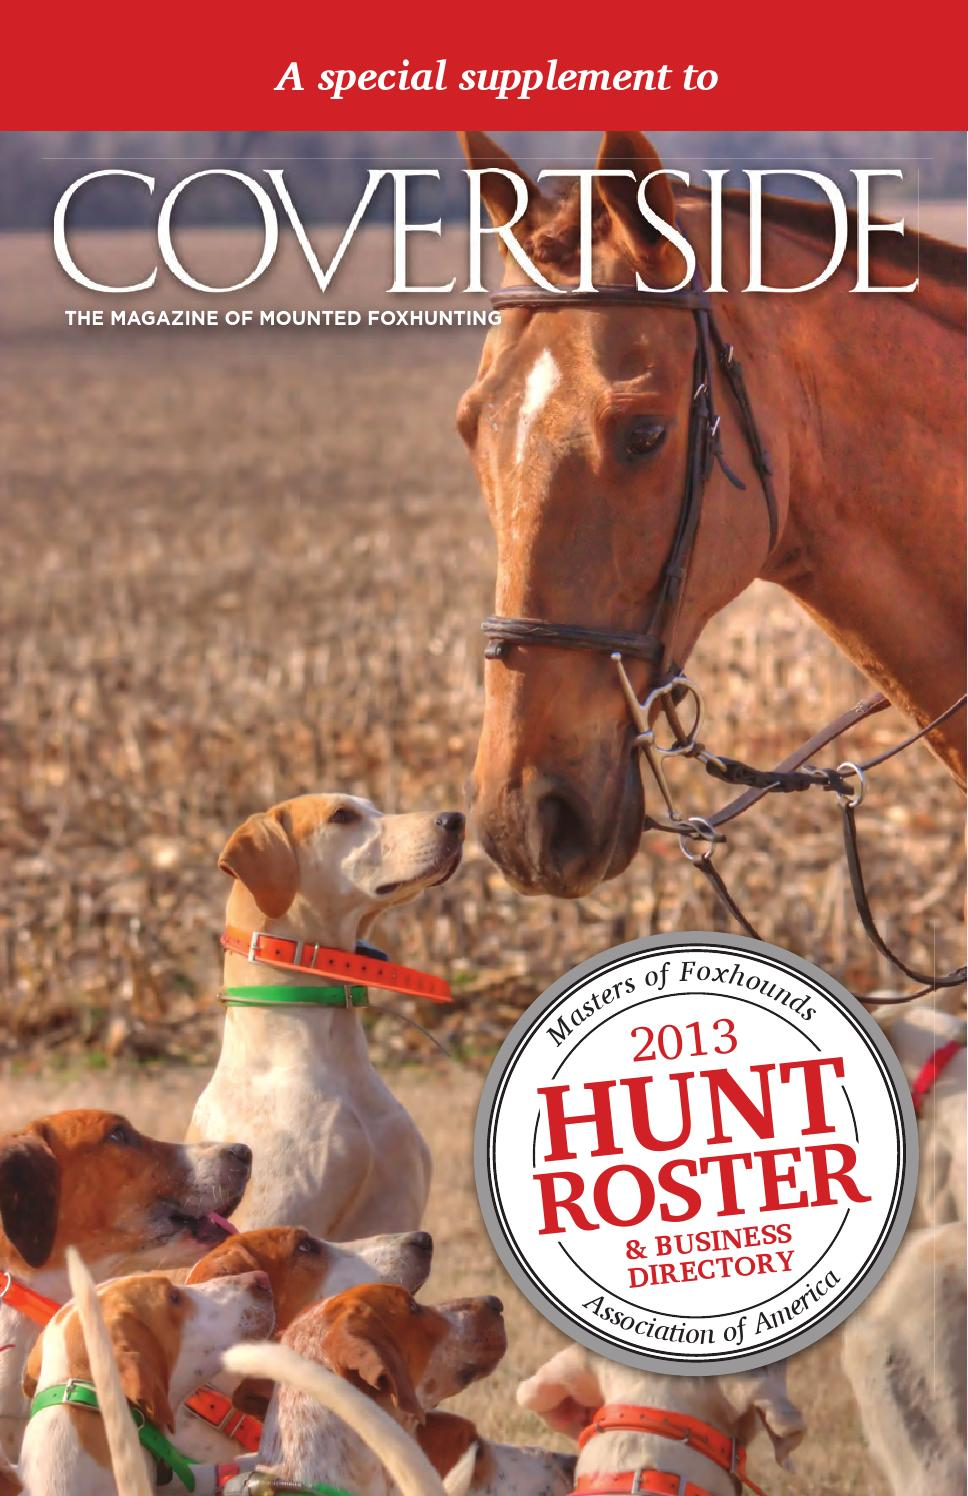 Hunt Roster 2013 by Emily Esterson issuu